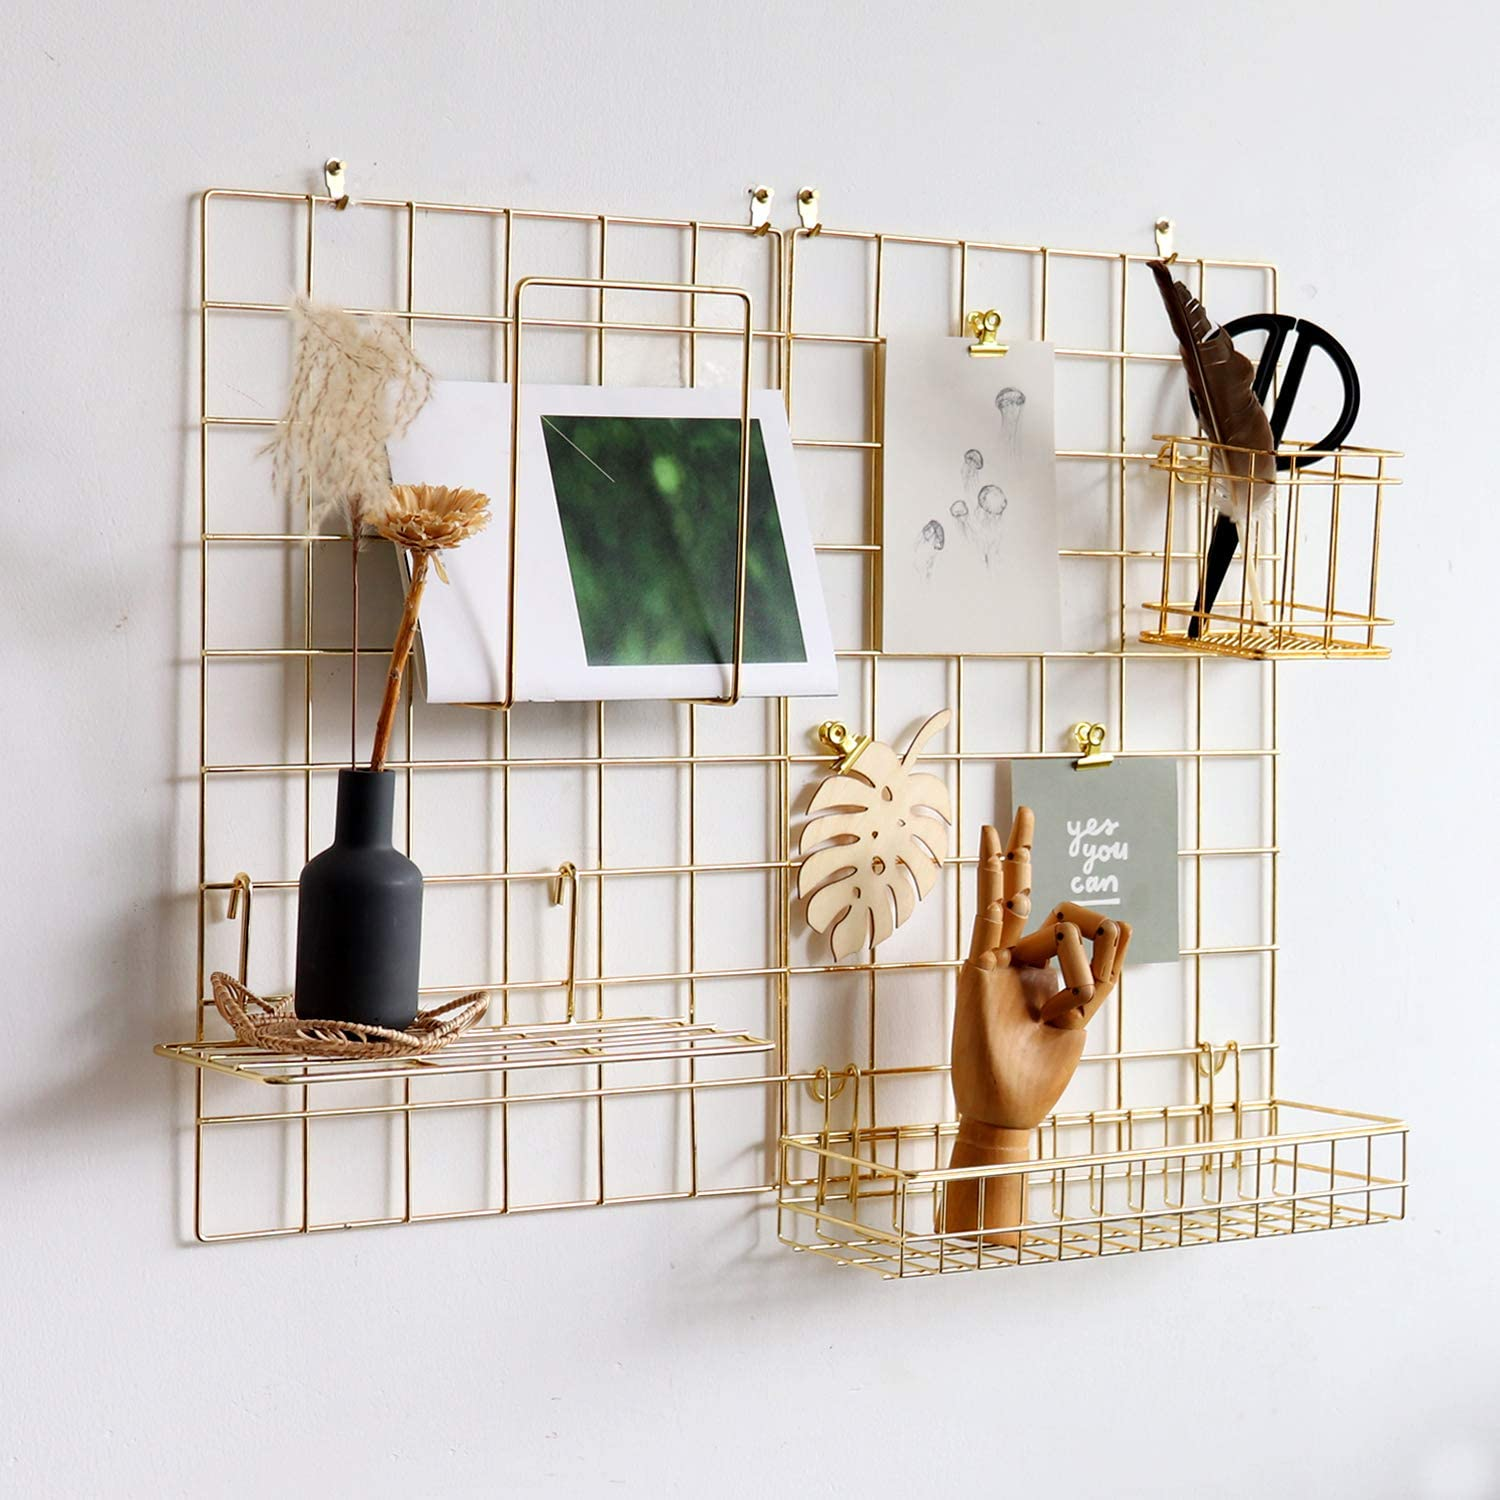 "FRIADE Wall Grid Panel for Photo Display,Wall Storage Organizer,5 Metal Clips & 3 S Hooks & 4 Nails & 4 Plastic Hanging Buckles and 4 Screws Offered,Size 17.5"" x 11.8"",2 Pack(Gold)"